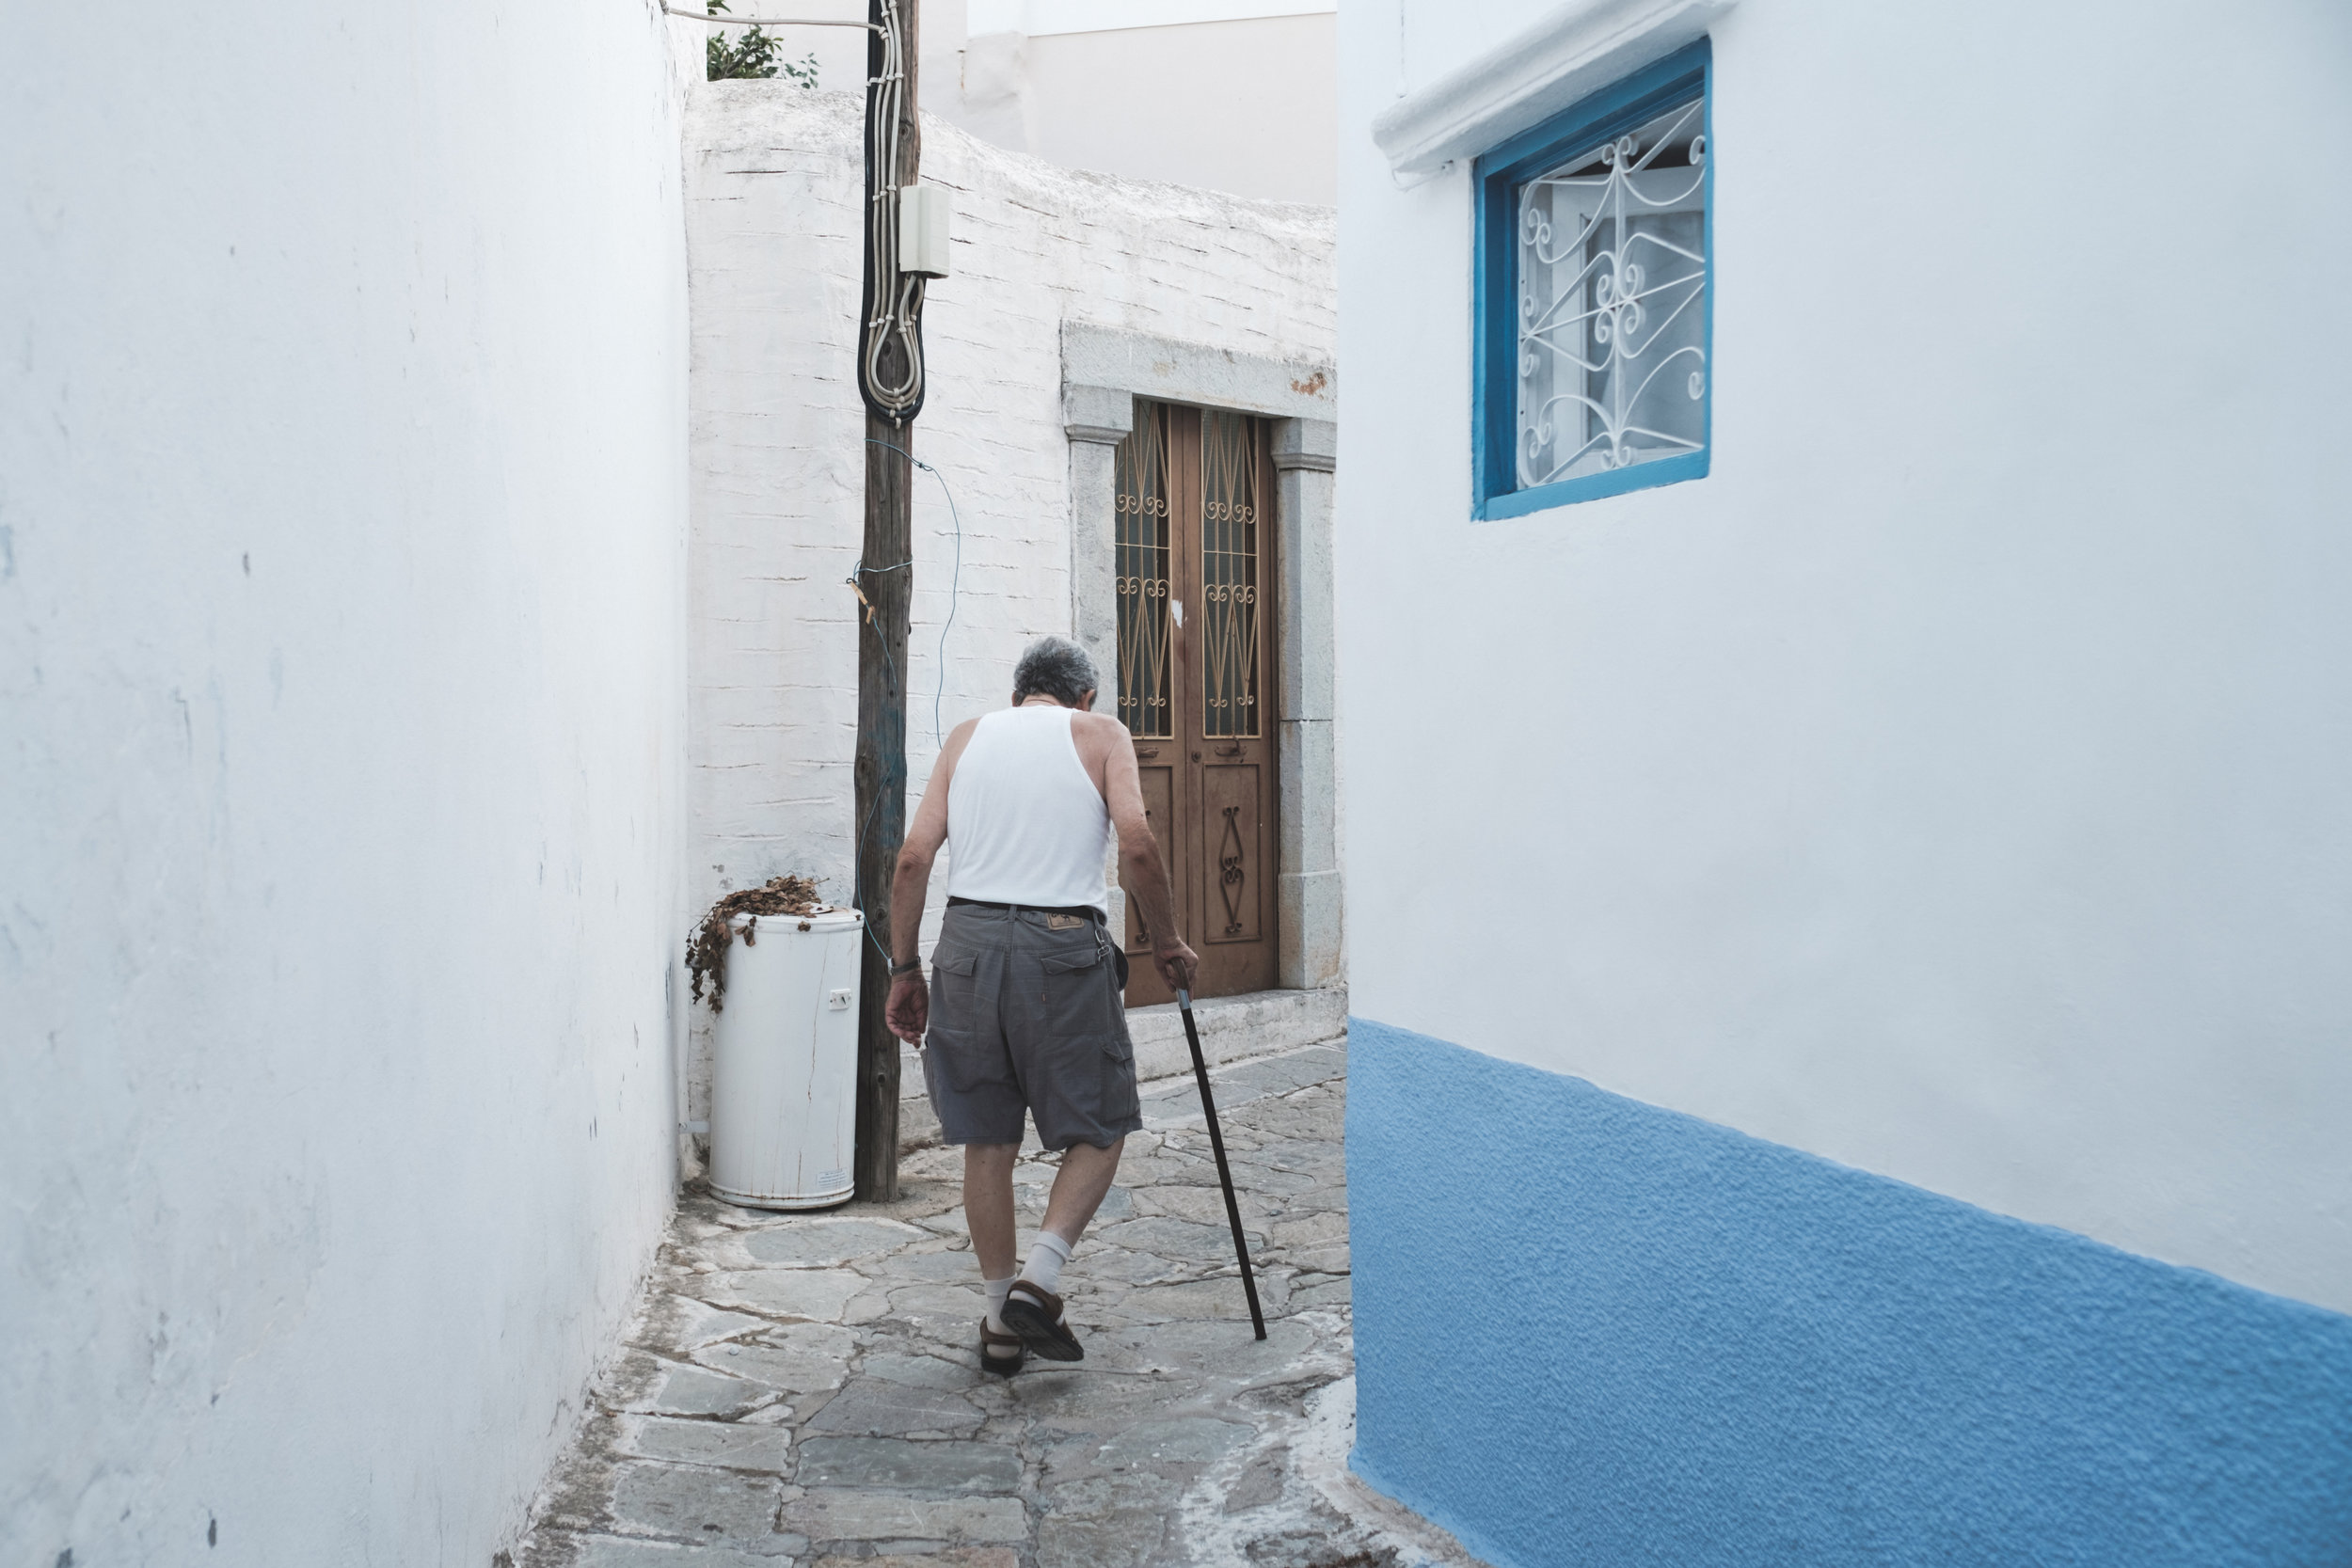 An elderly man walks with a cane through the back alleys of Symi in Greece